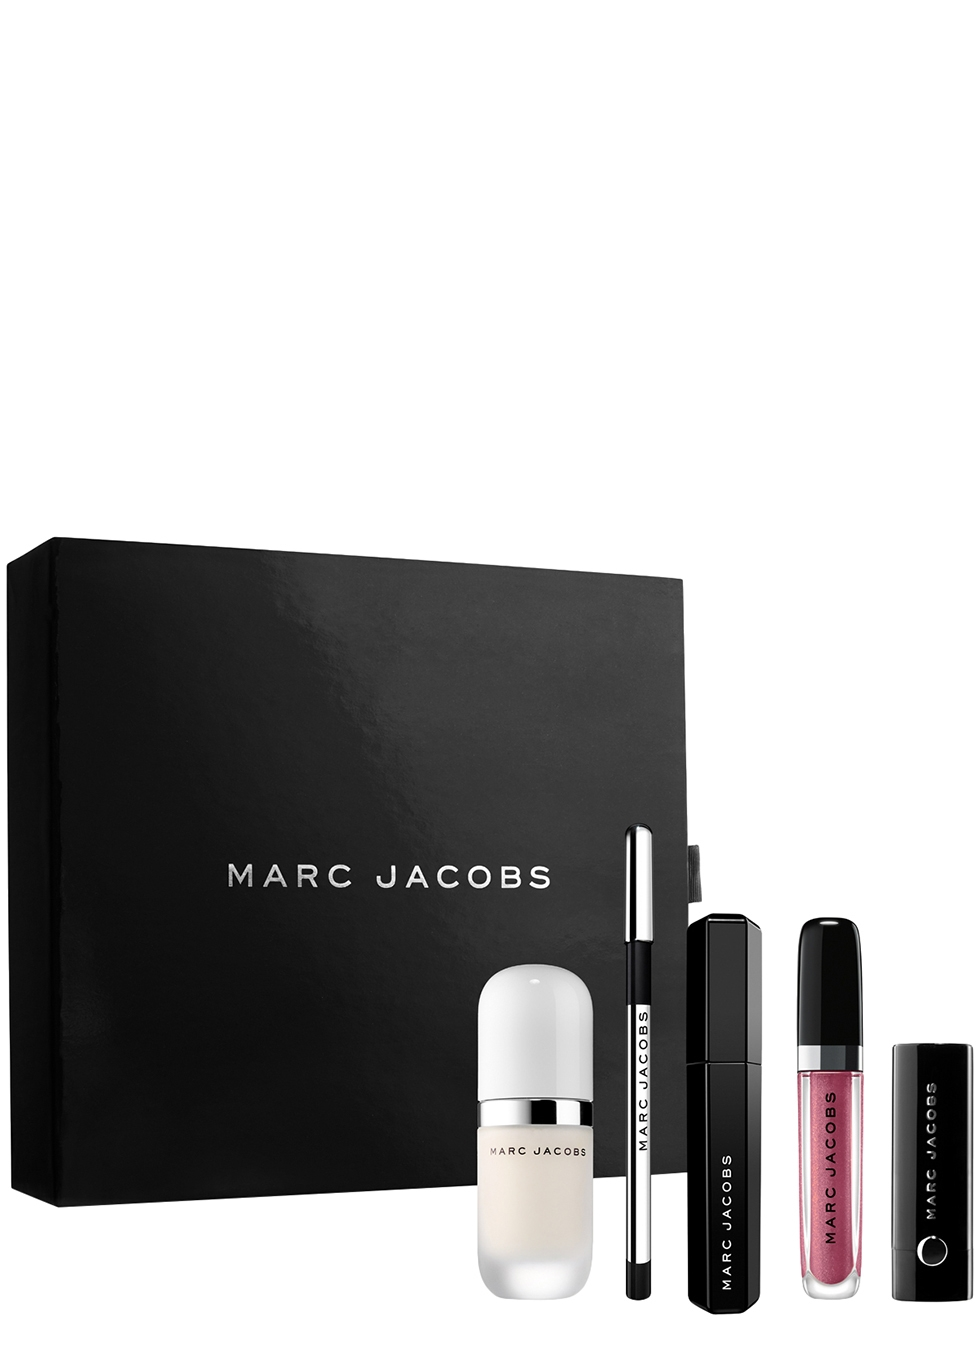 Effortlessly Irrestistible Most Coveted Bestsellers Set - MARC JACOBS BEAUTY